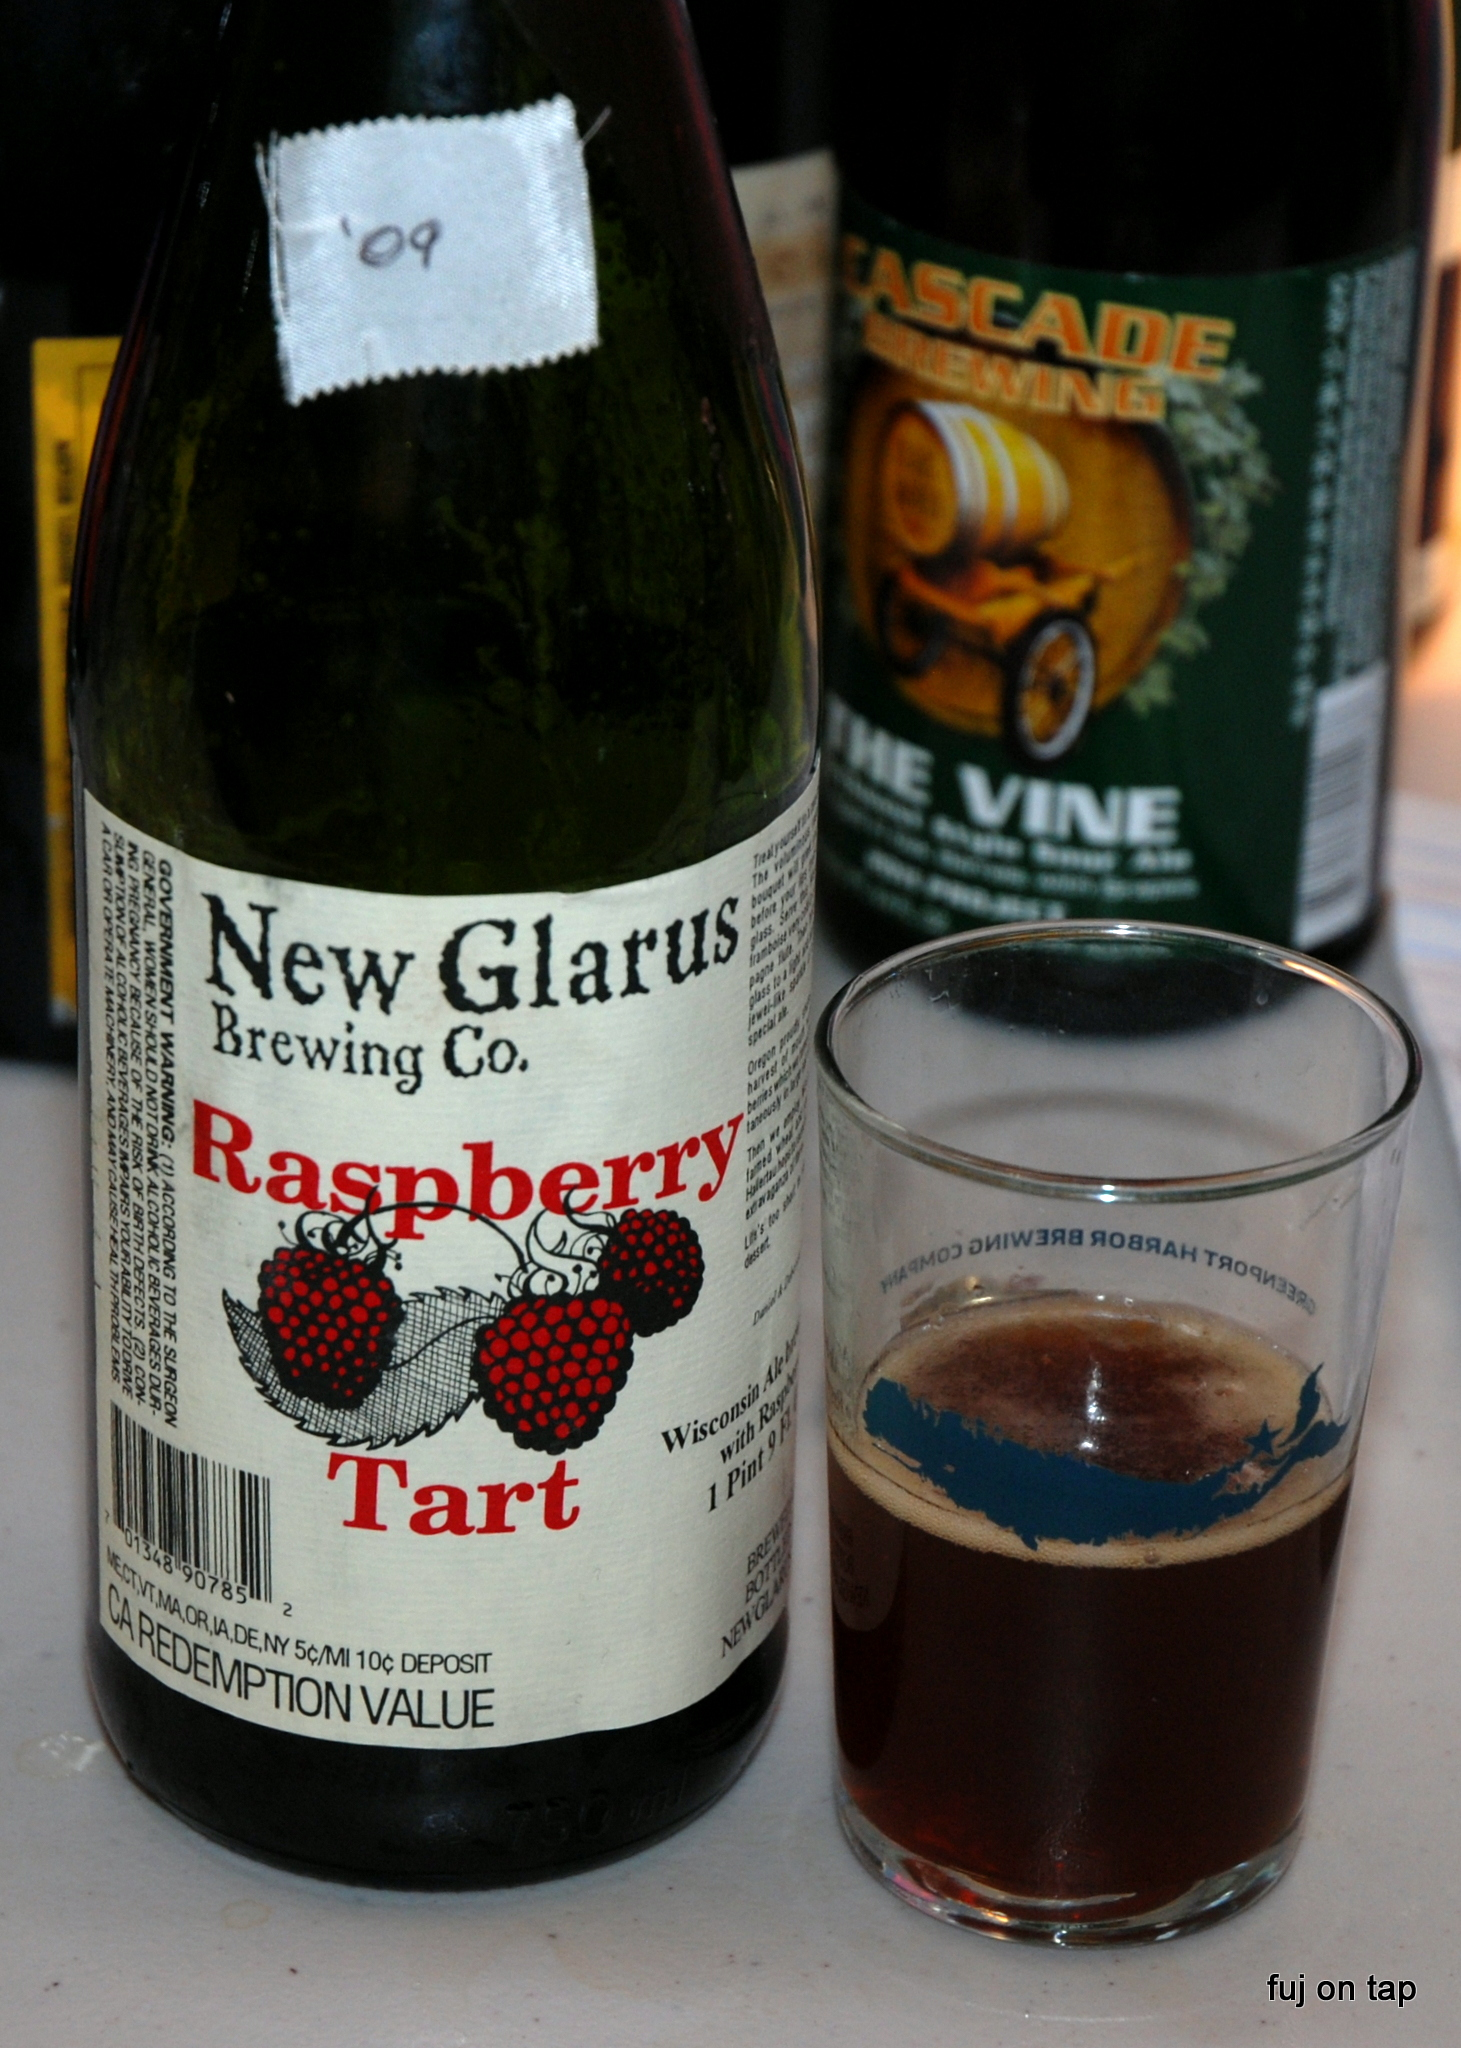 2009 New Glarus Raspberry Tart